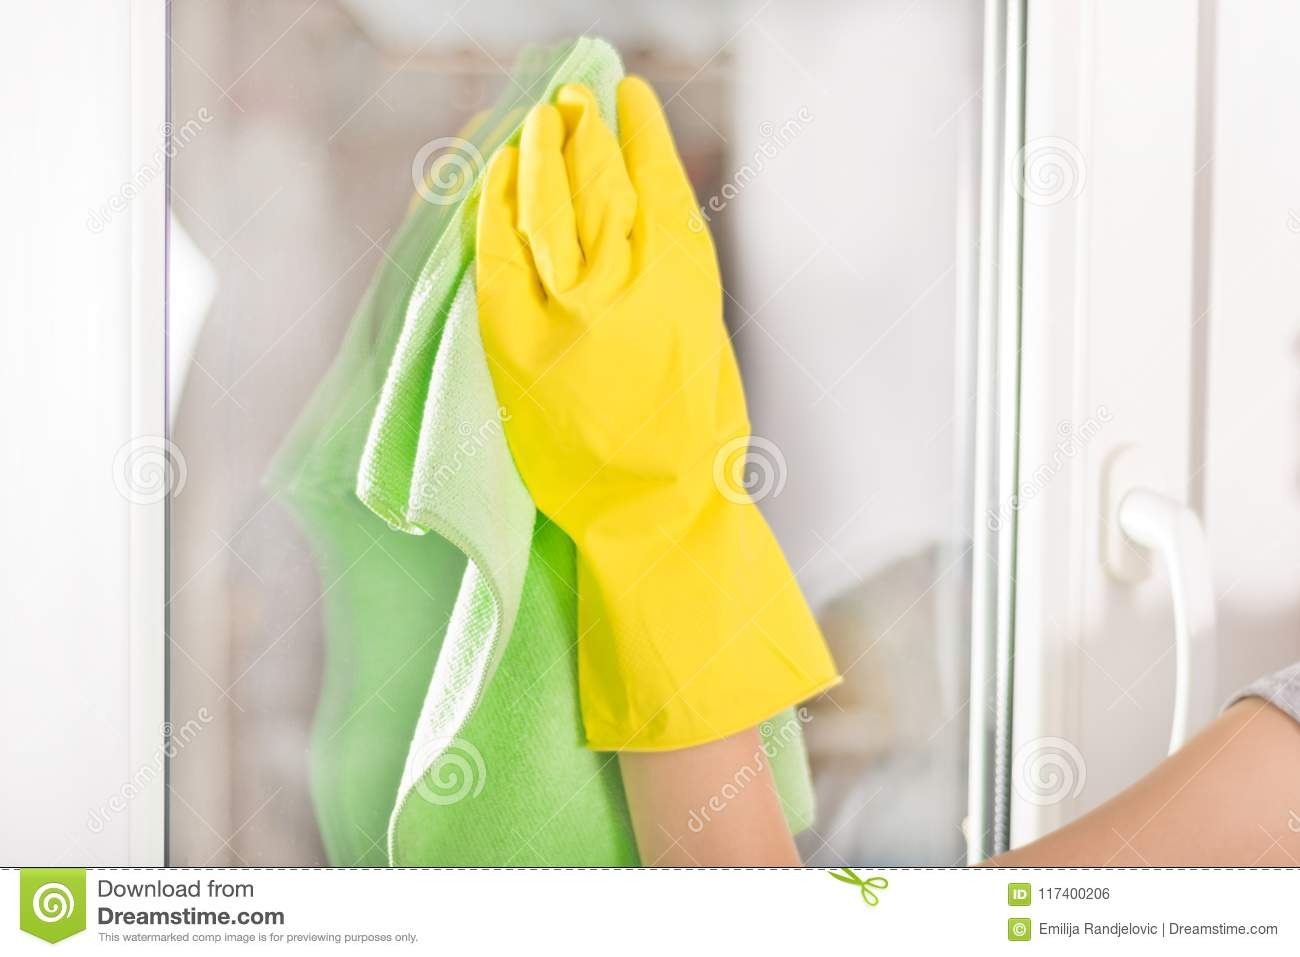 Woman hand with yellow protective glove and green rag cleaning window at home